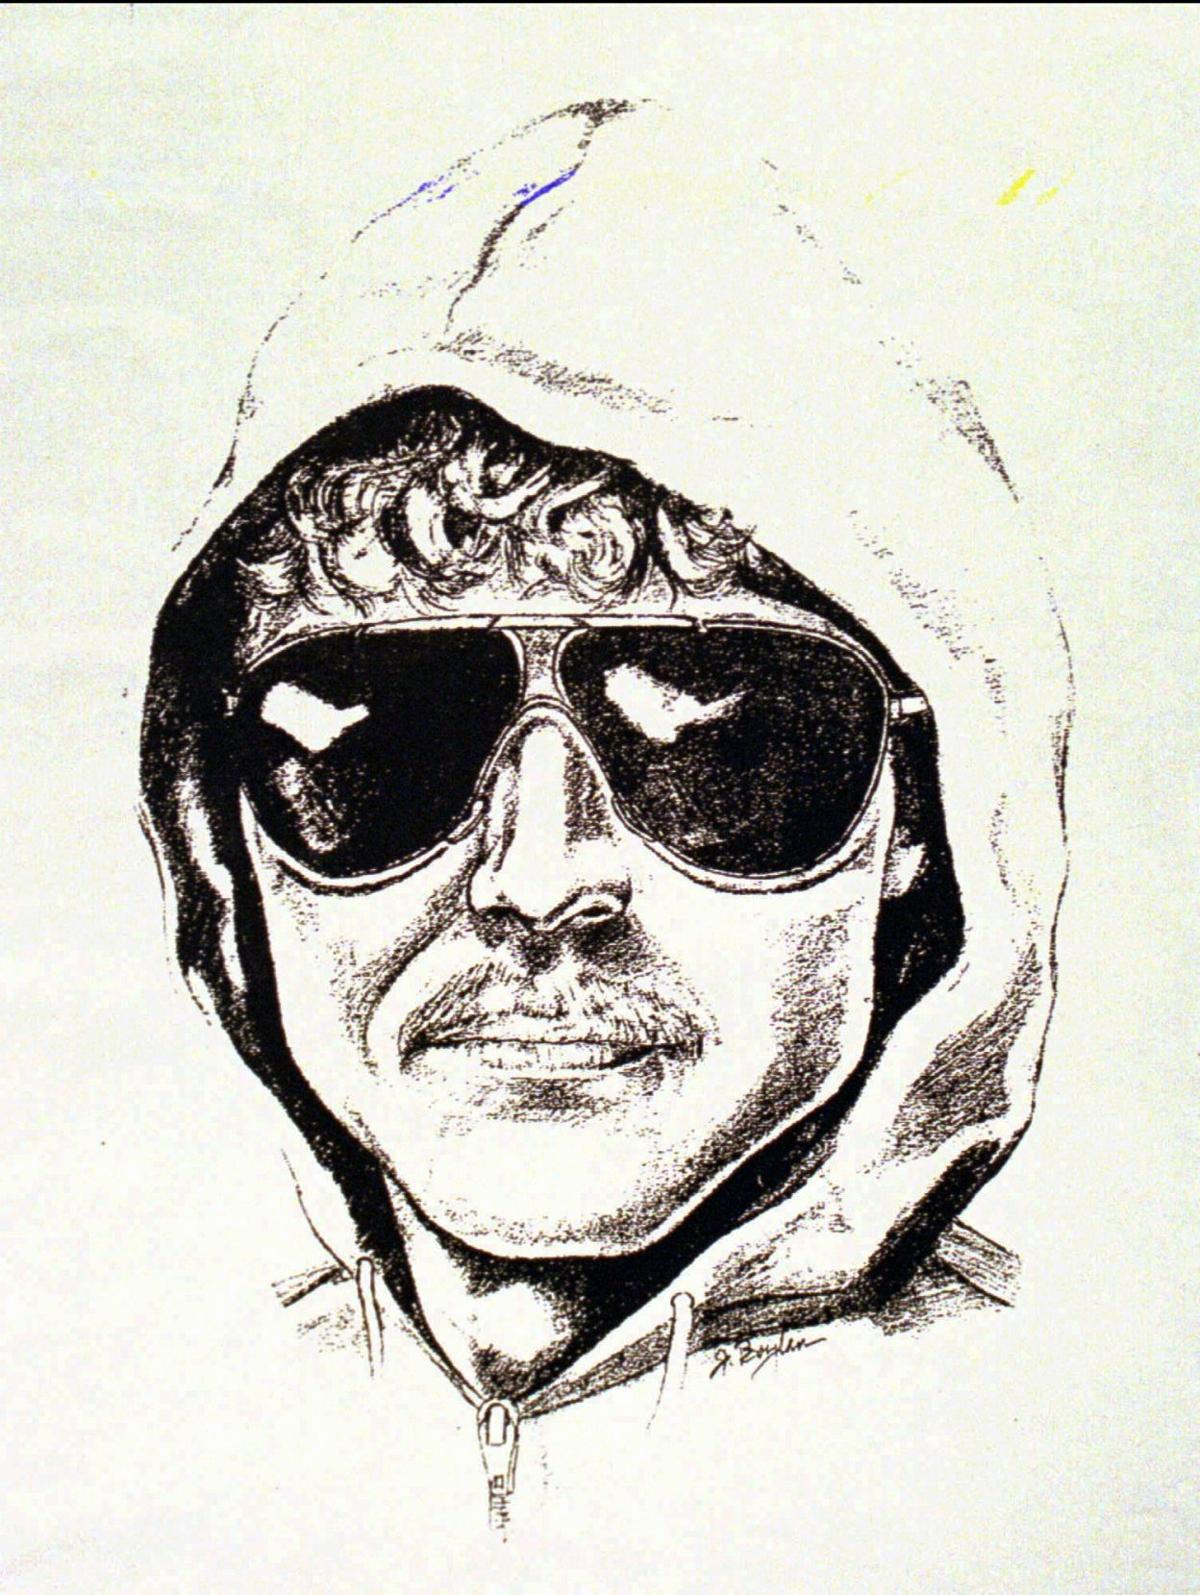 1995: The Unabomber